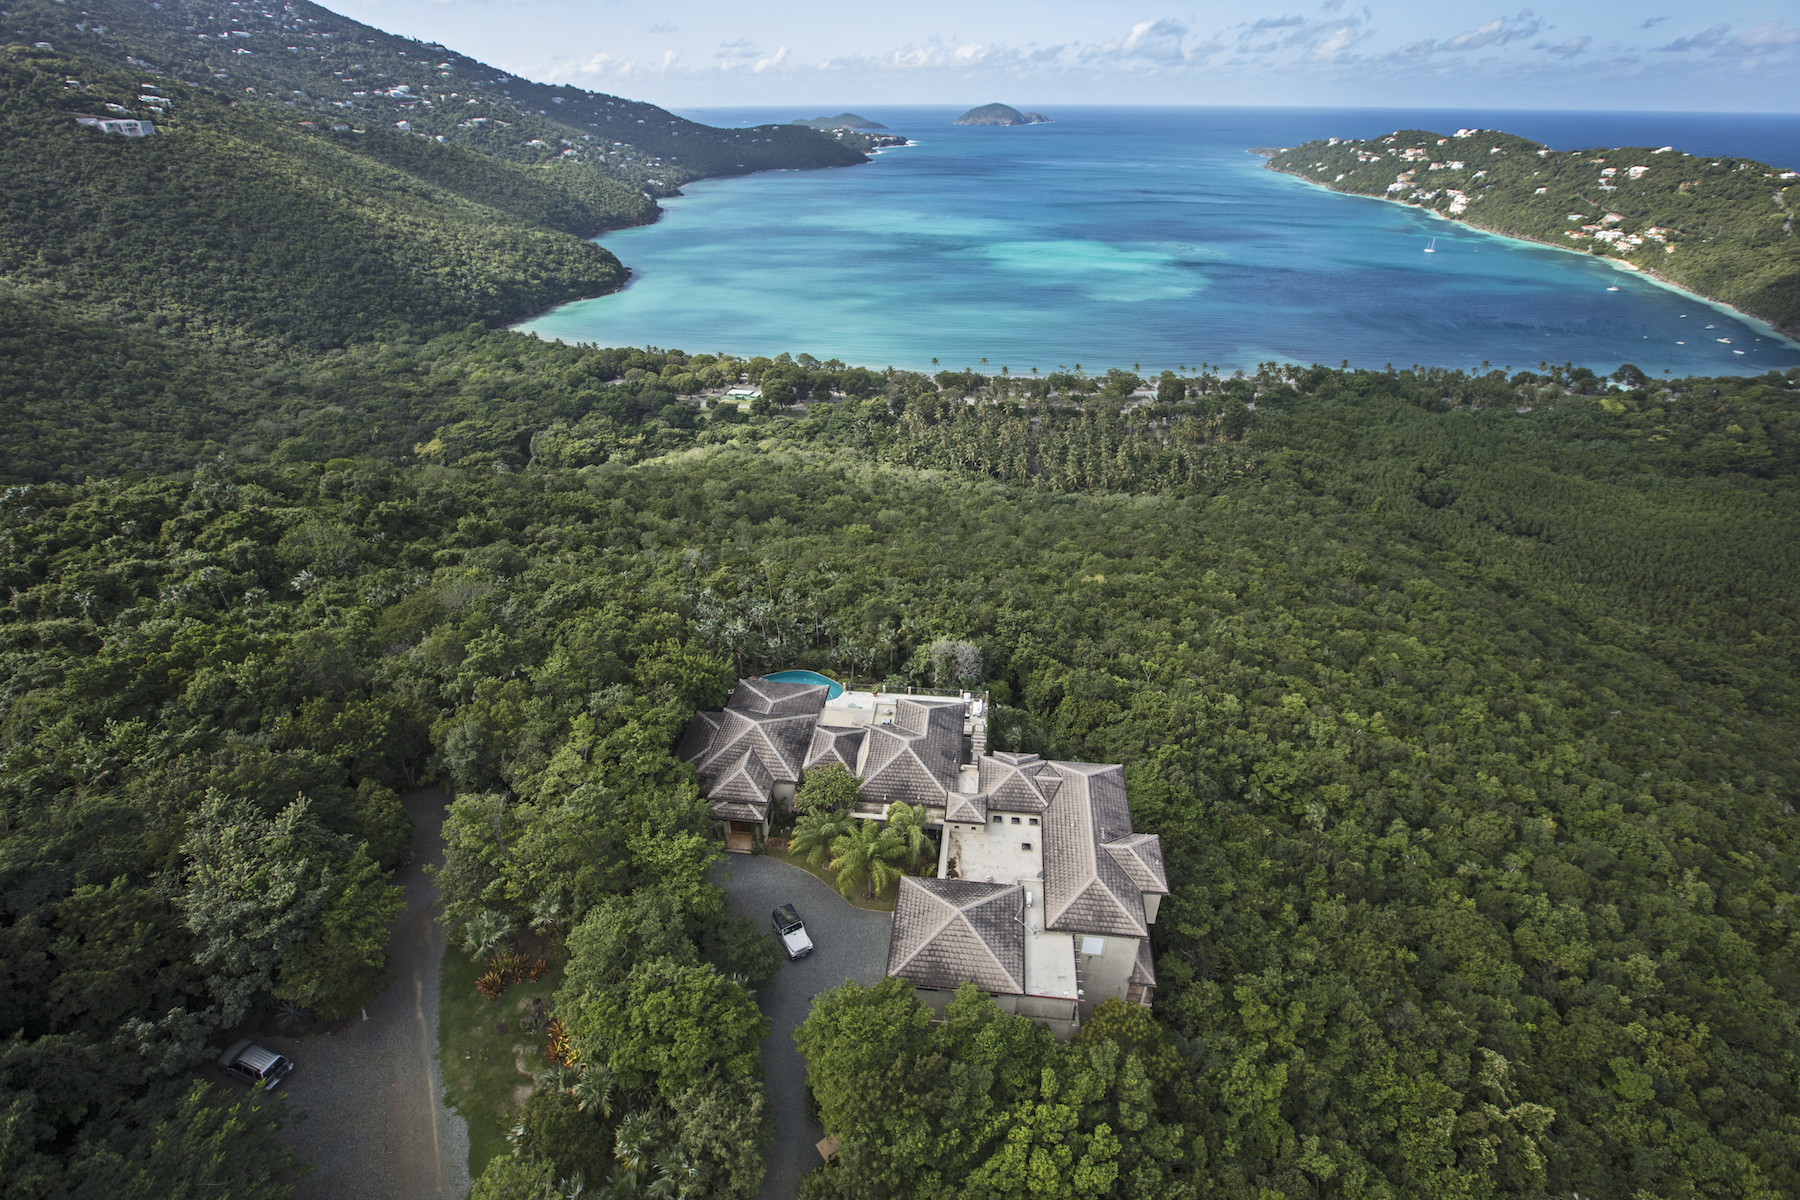 Single Family Home for Sale at Estate Sherpenjewel 1A-4 Estate Canaan & Sherpenjewel St Thomas, Virgin Islands 00802 United States Virgin Islands